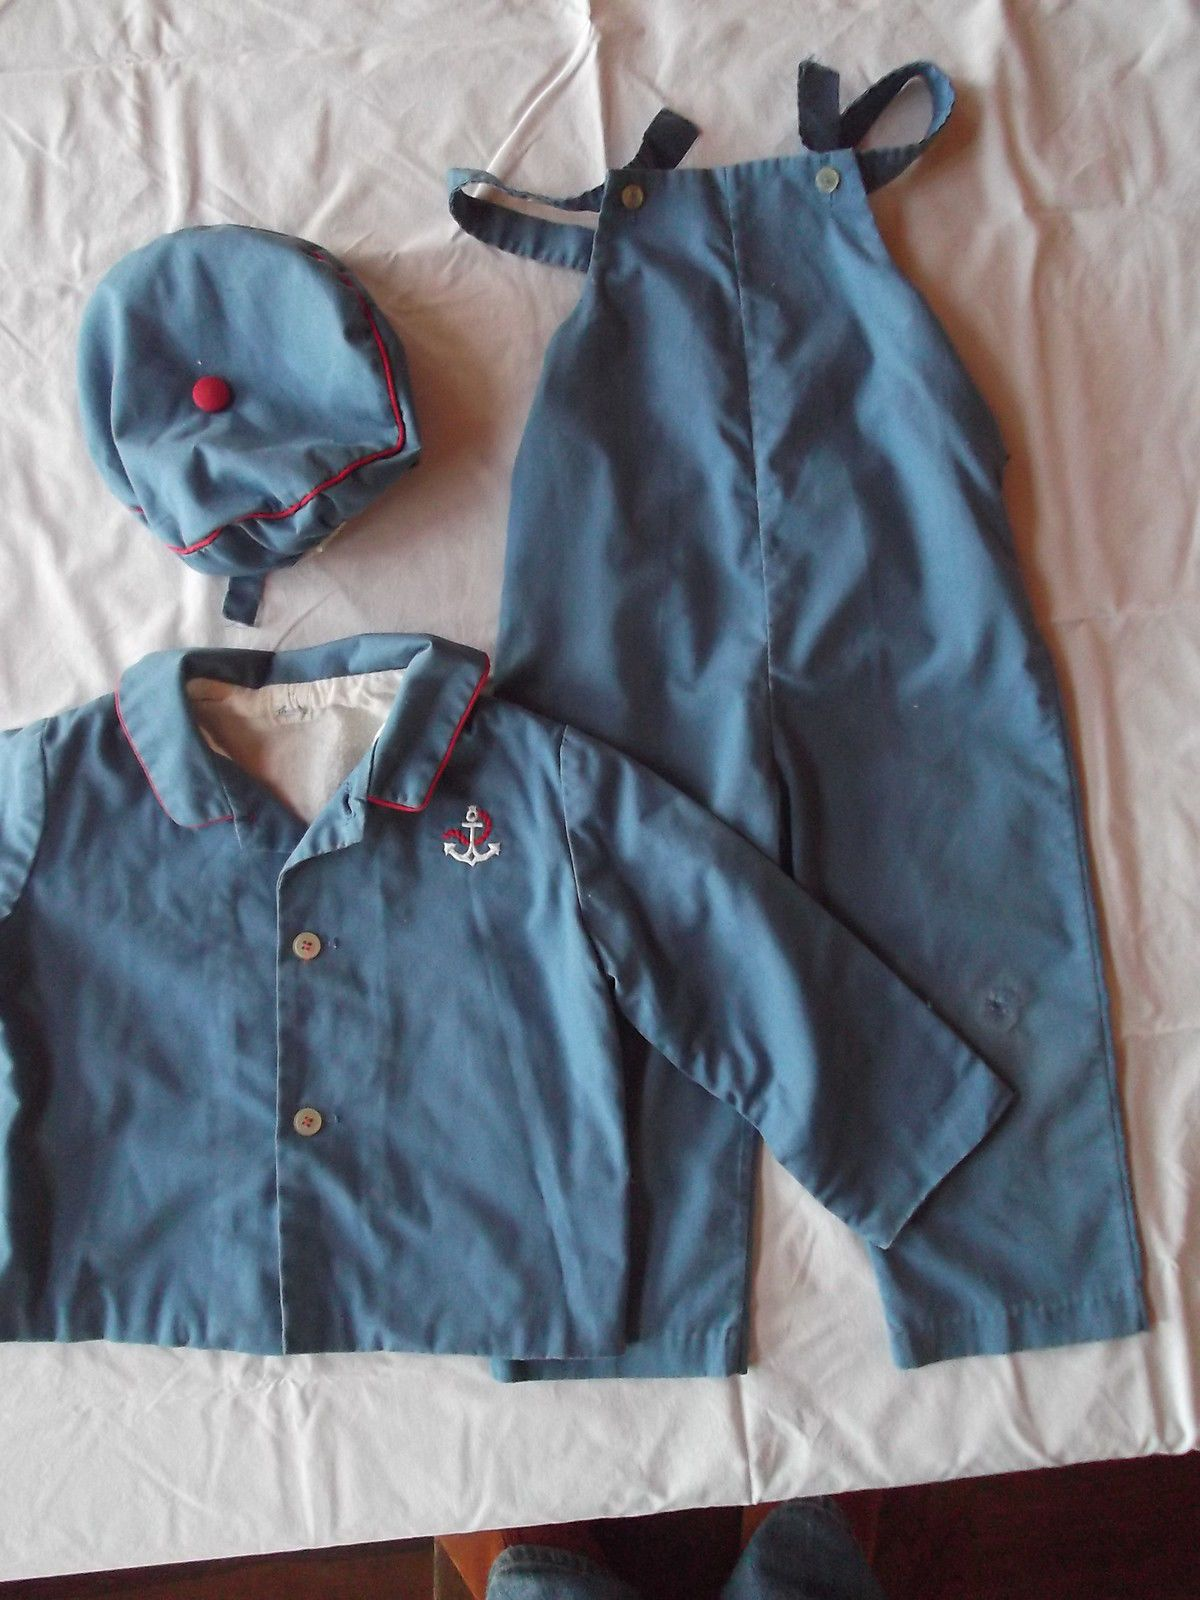 Vintage Baby Doll Boy Outfit 3 PC Set Jacket Overalls Hat Blue Sailor Nautical | eBay